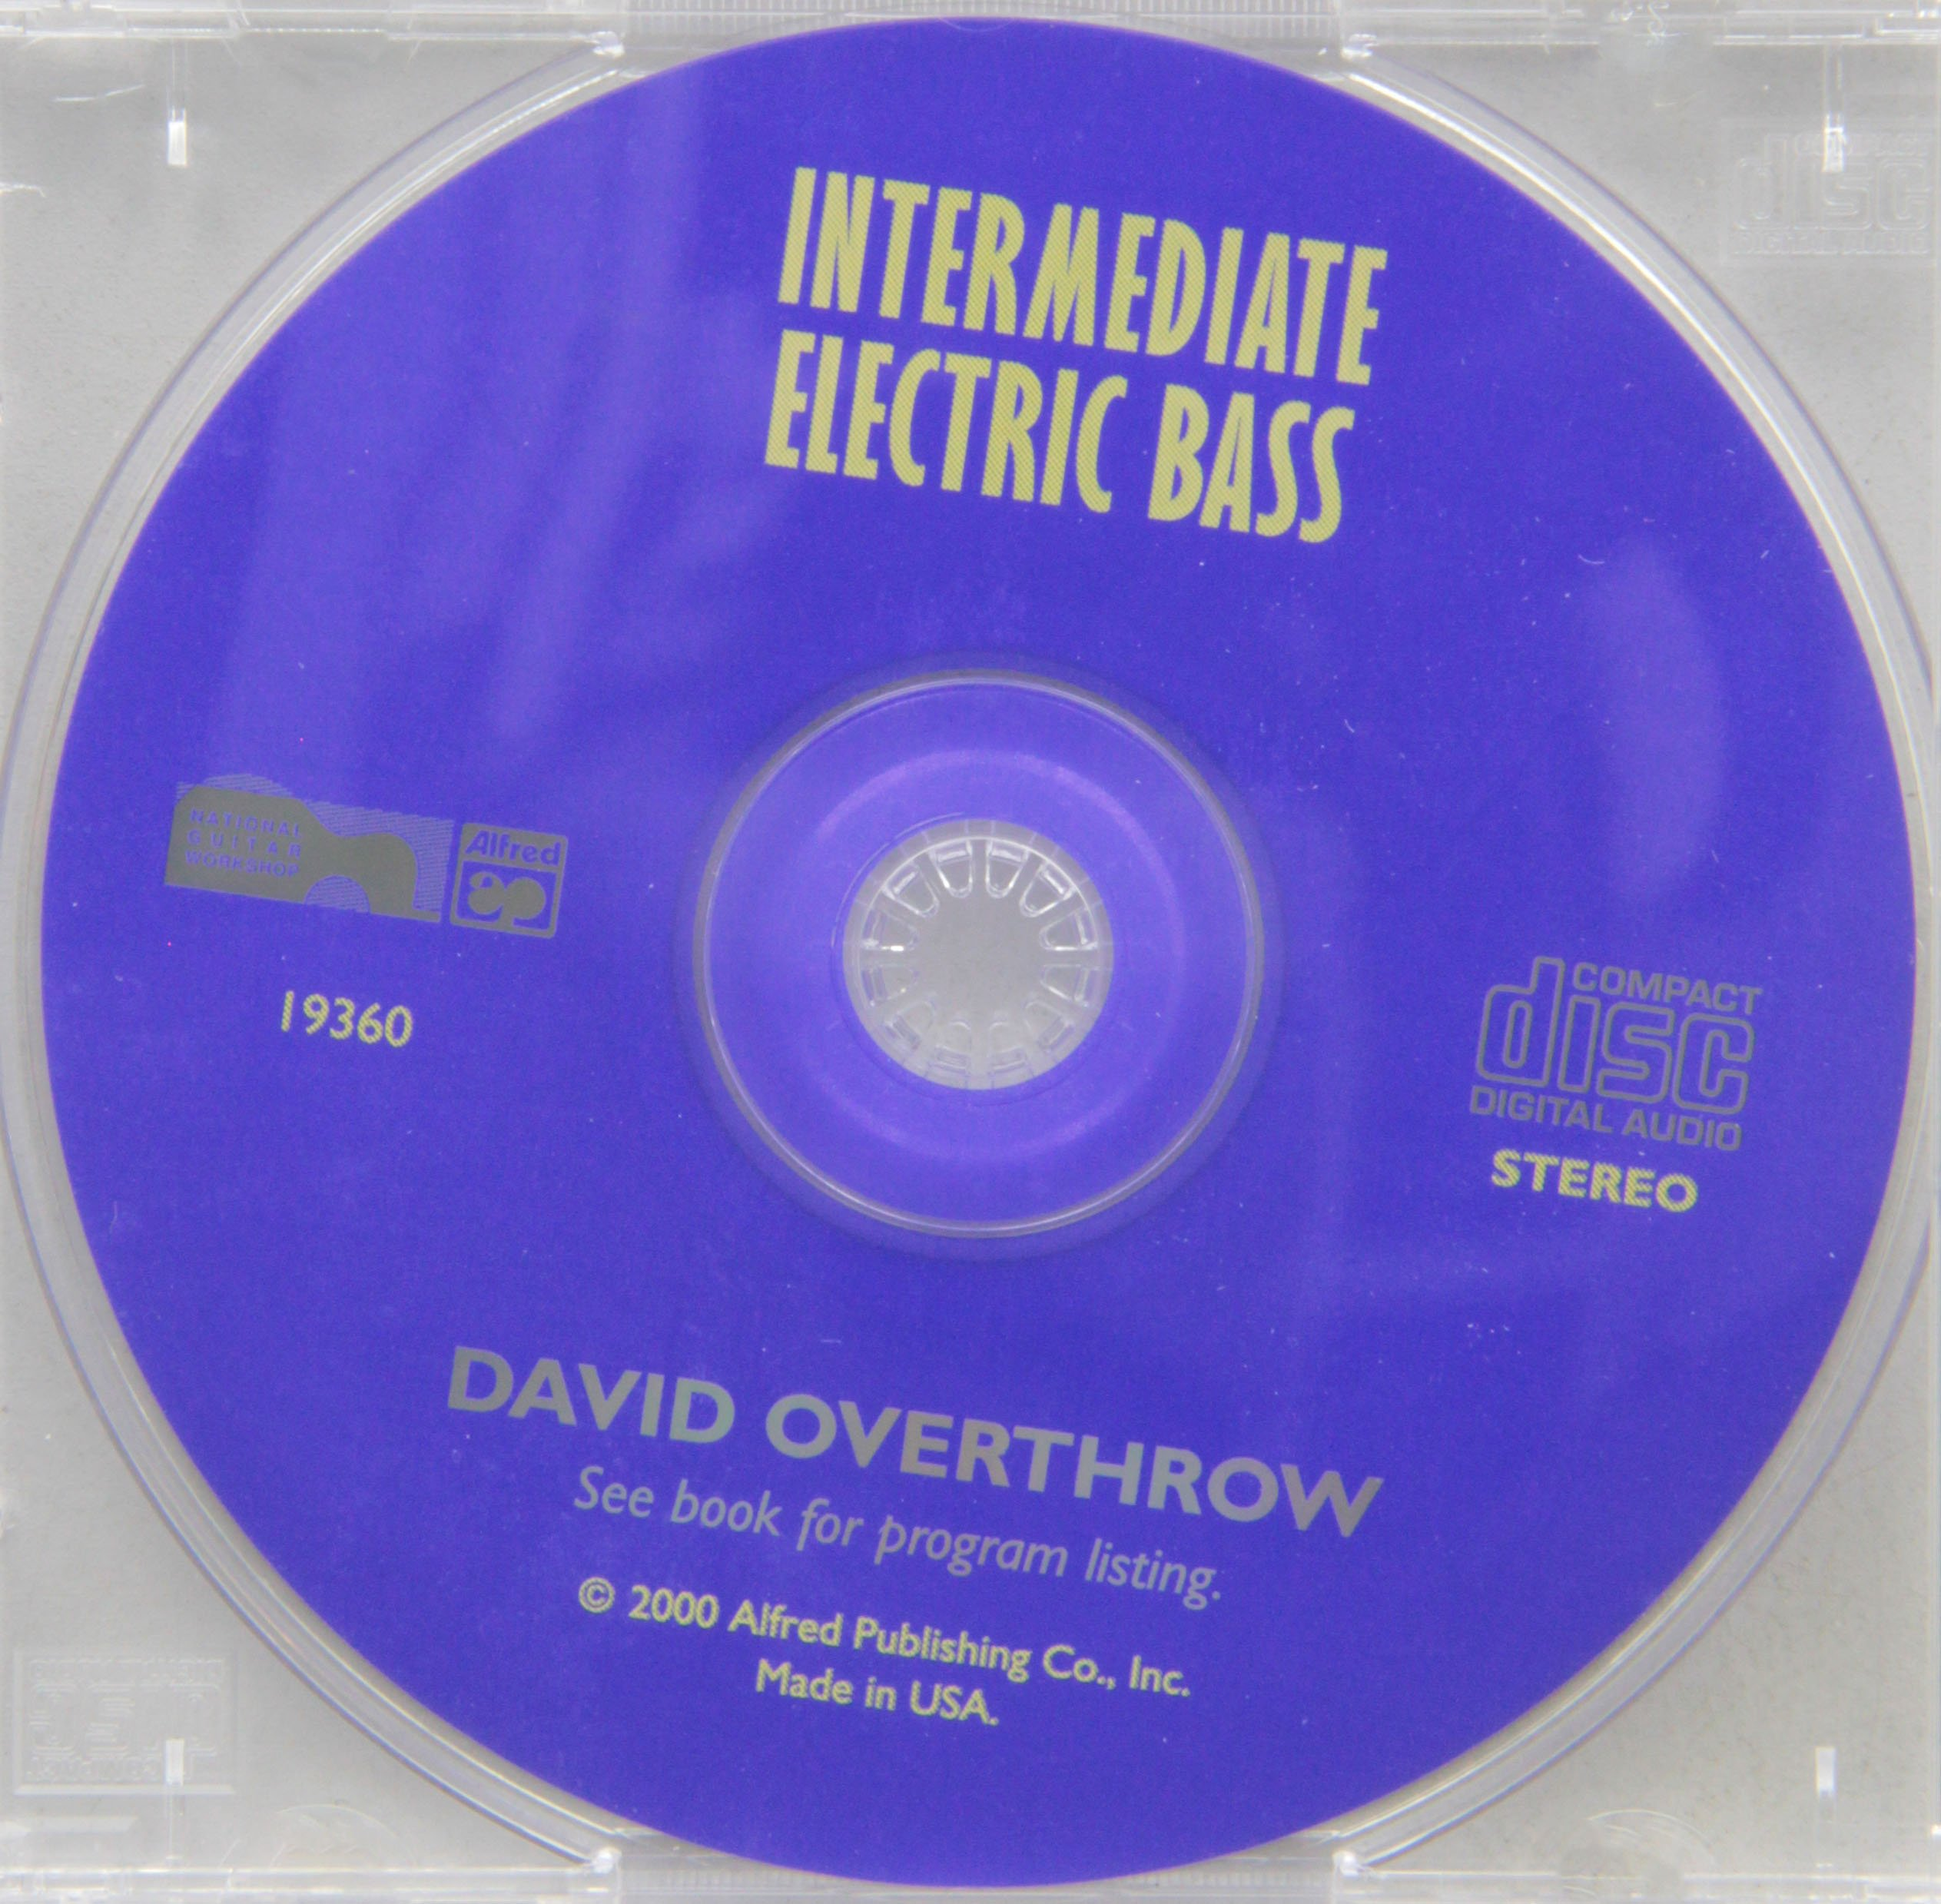 Download Complete Electric Bass Method: Intermediate Electric Bass (Complete Method) pdf